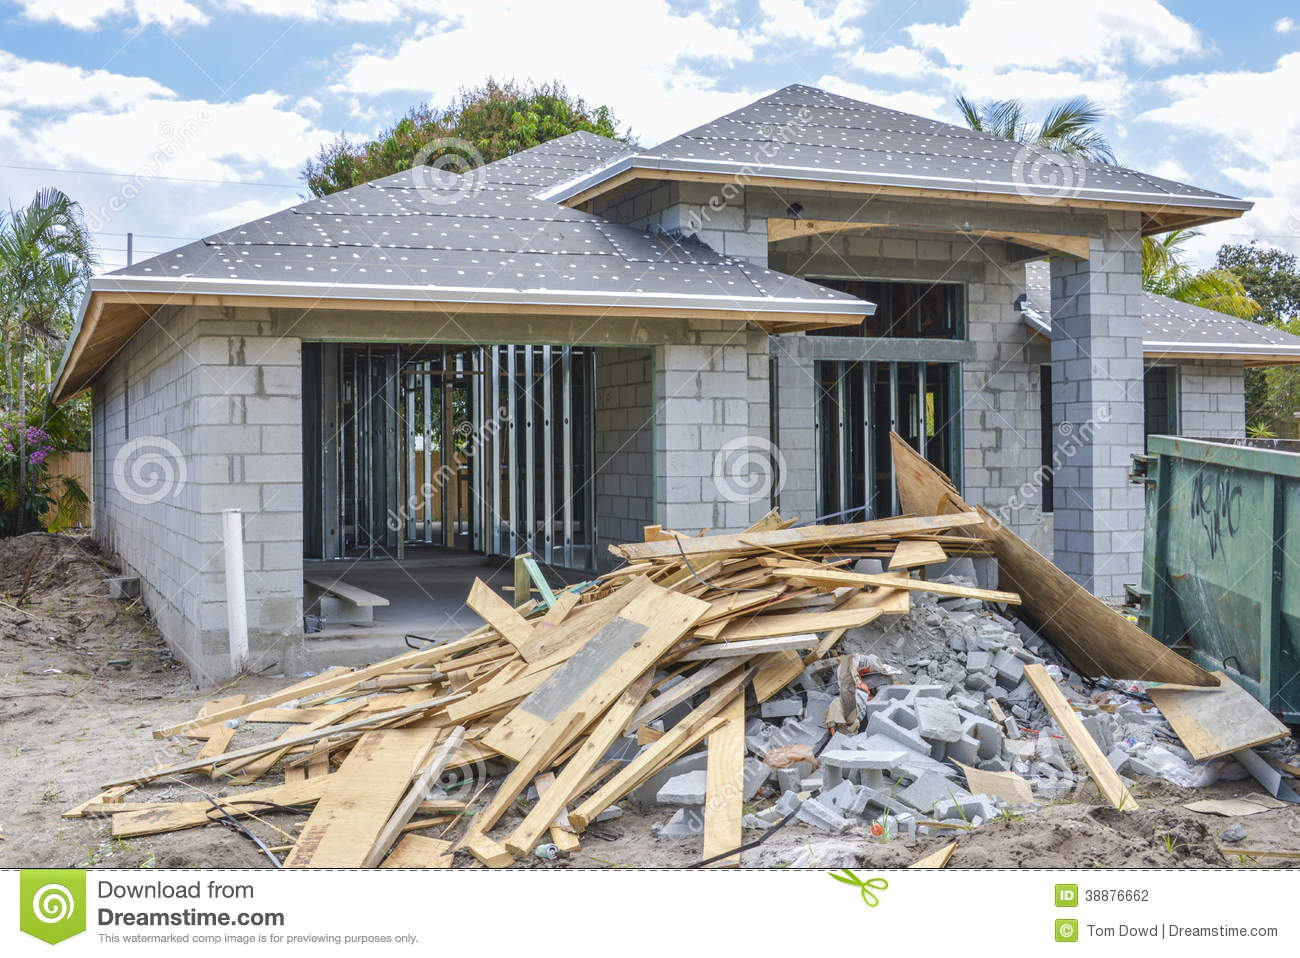 New Home And Construction Debris Stock Photo Image 38876662